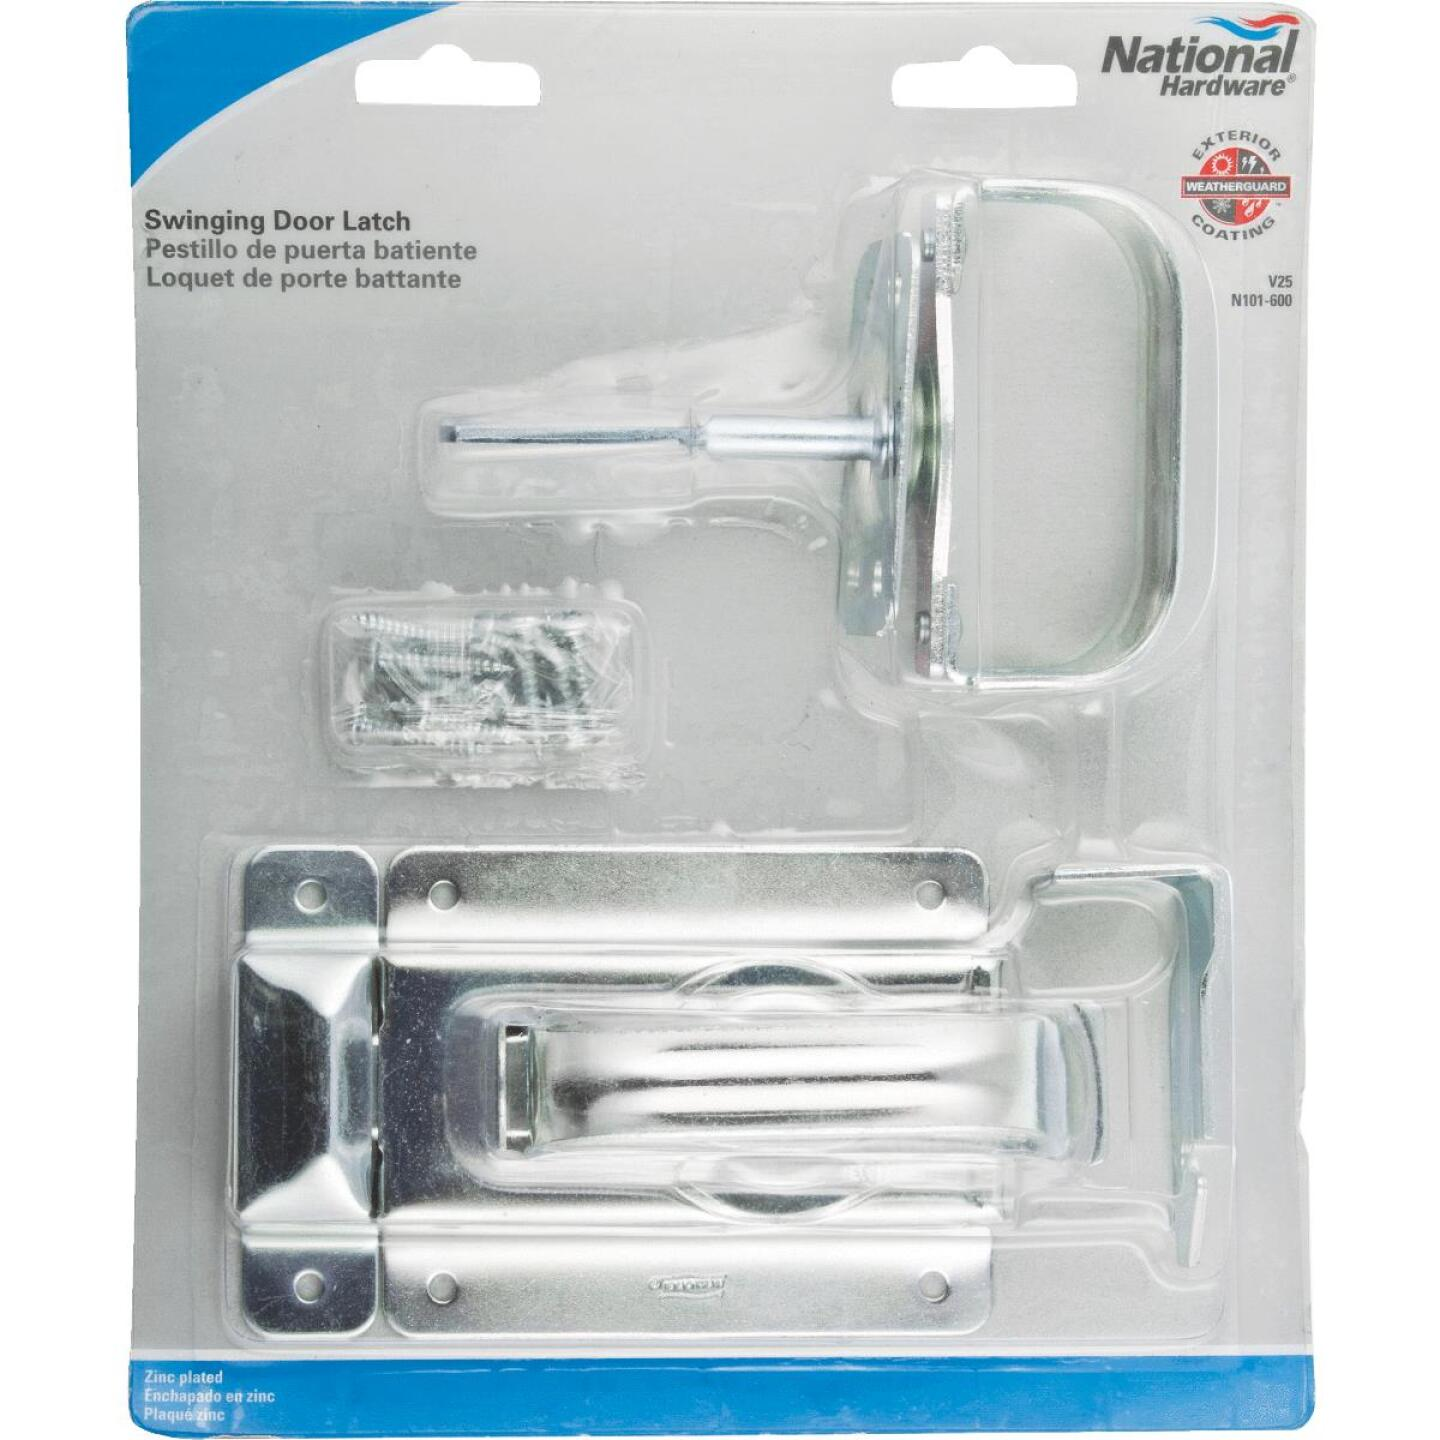 National Zinc Steel Swinging Door Latch Image 2